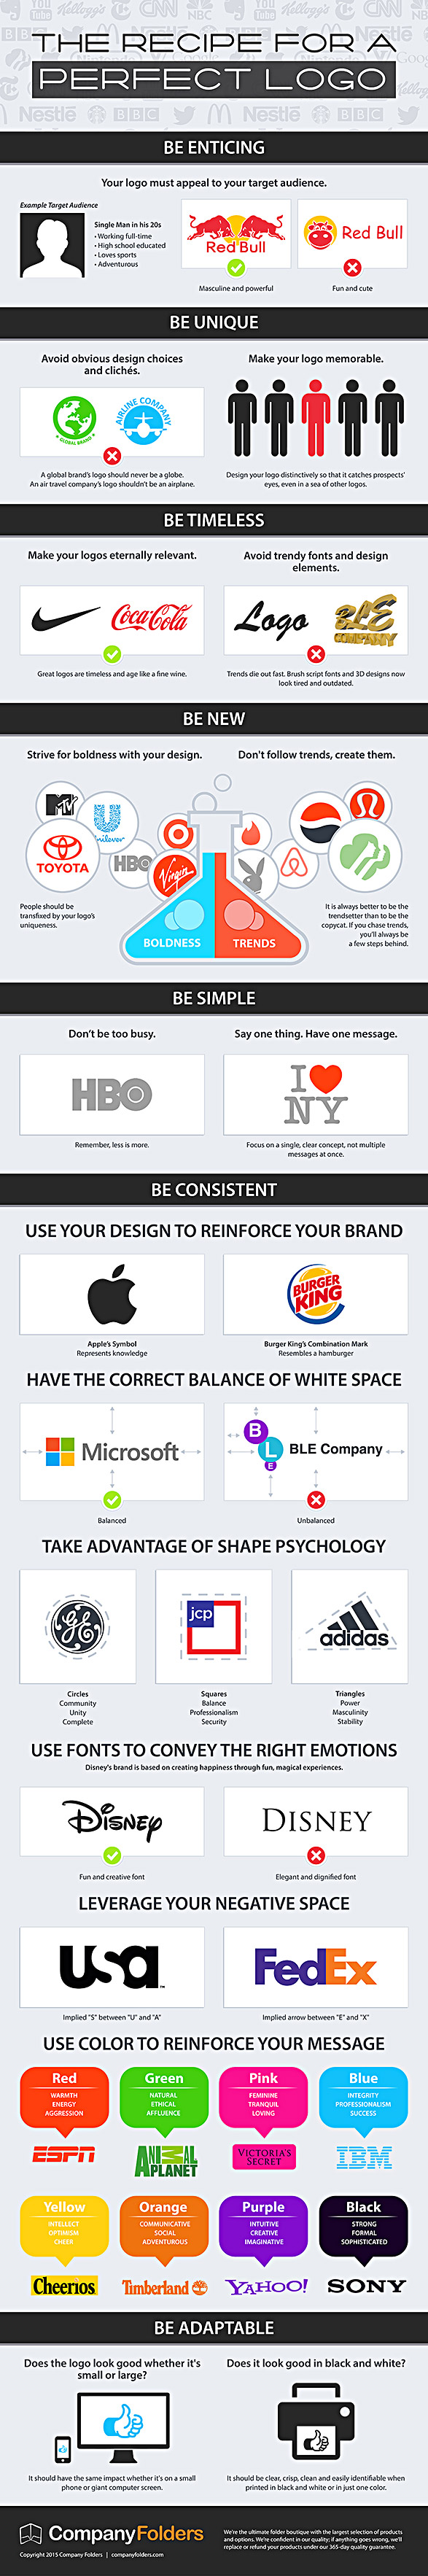 The recipe for a perfect logo (Infographic)